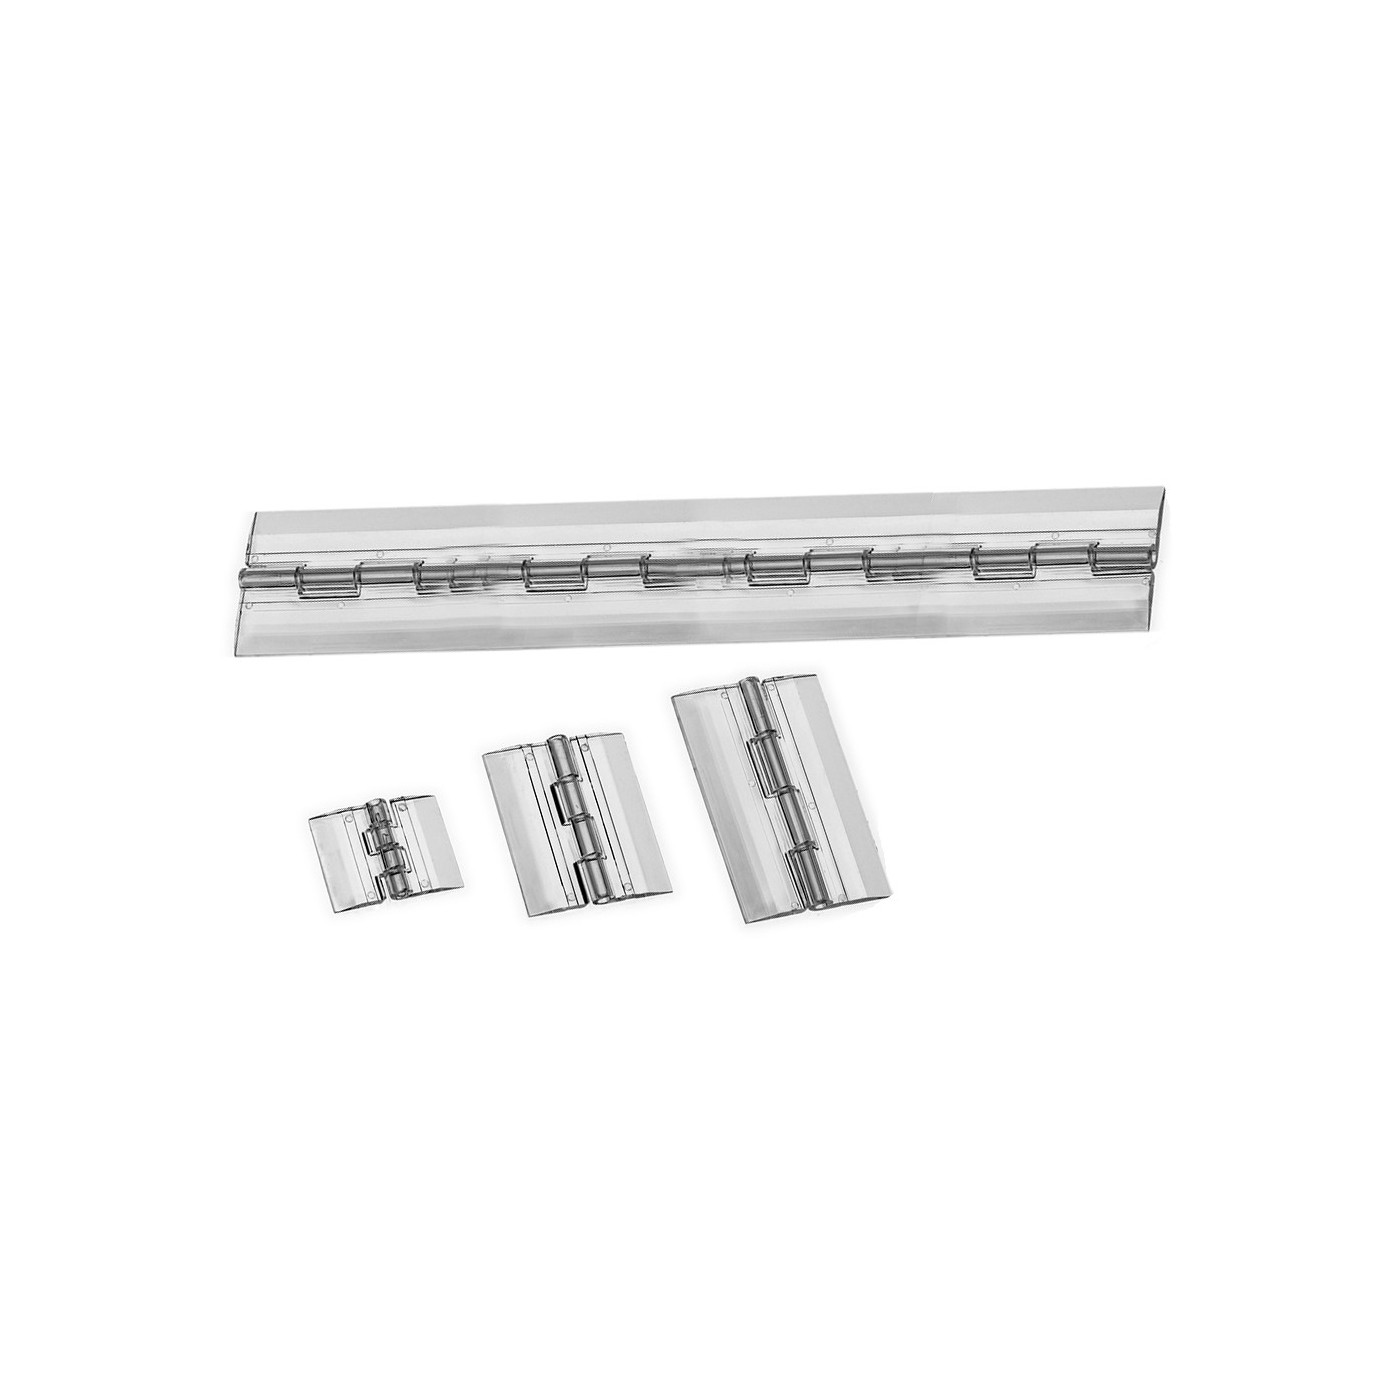 Set of 30 plastic hinges, transparent, 25x33 mm  - 1